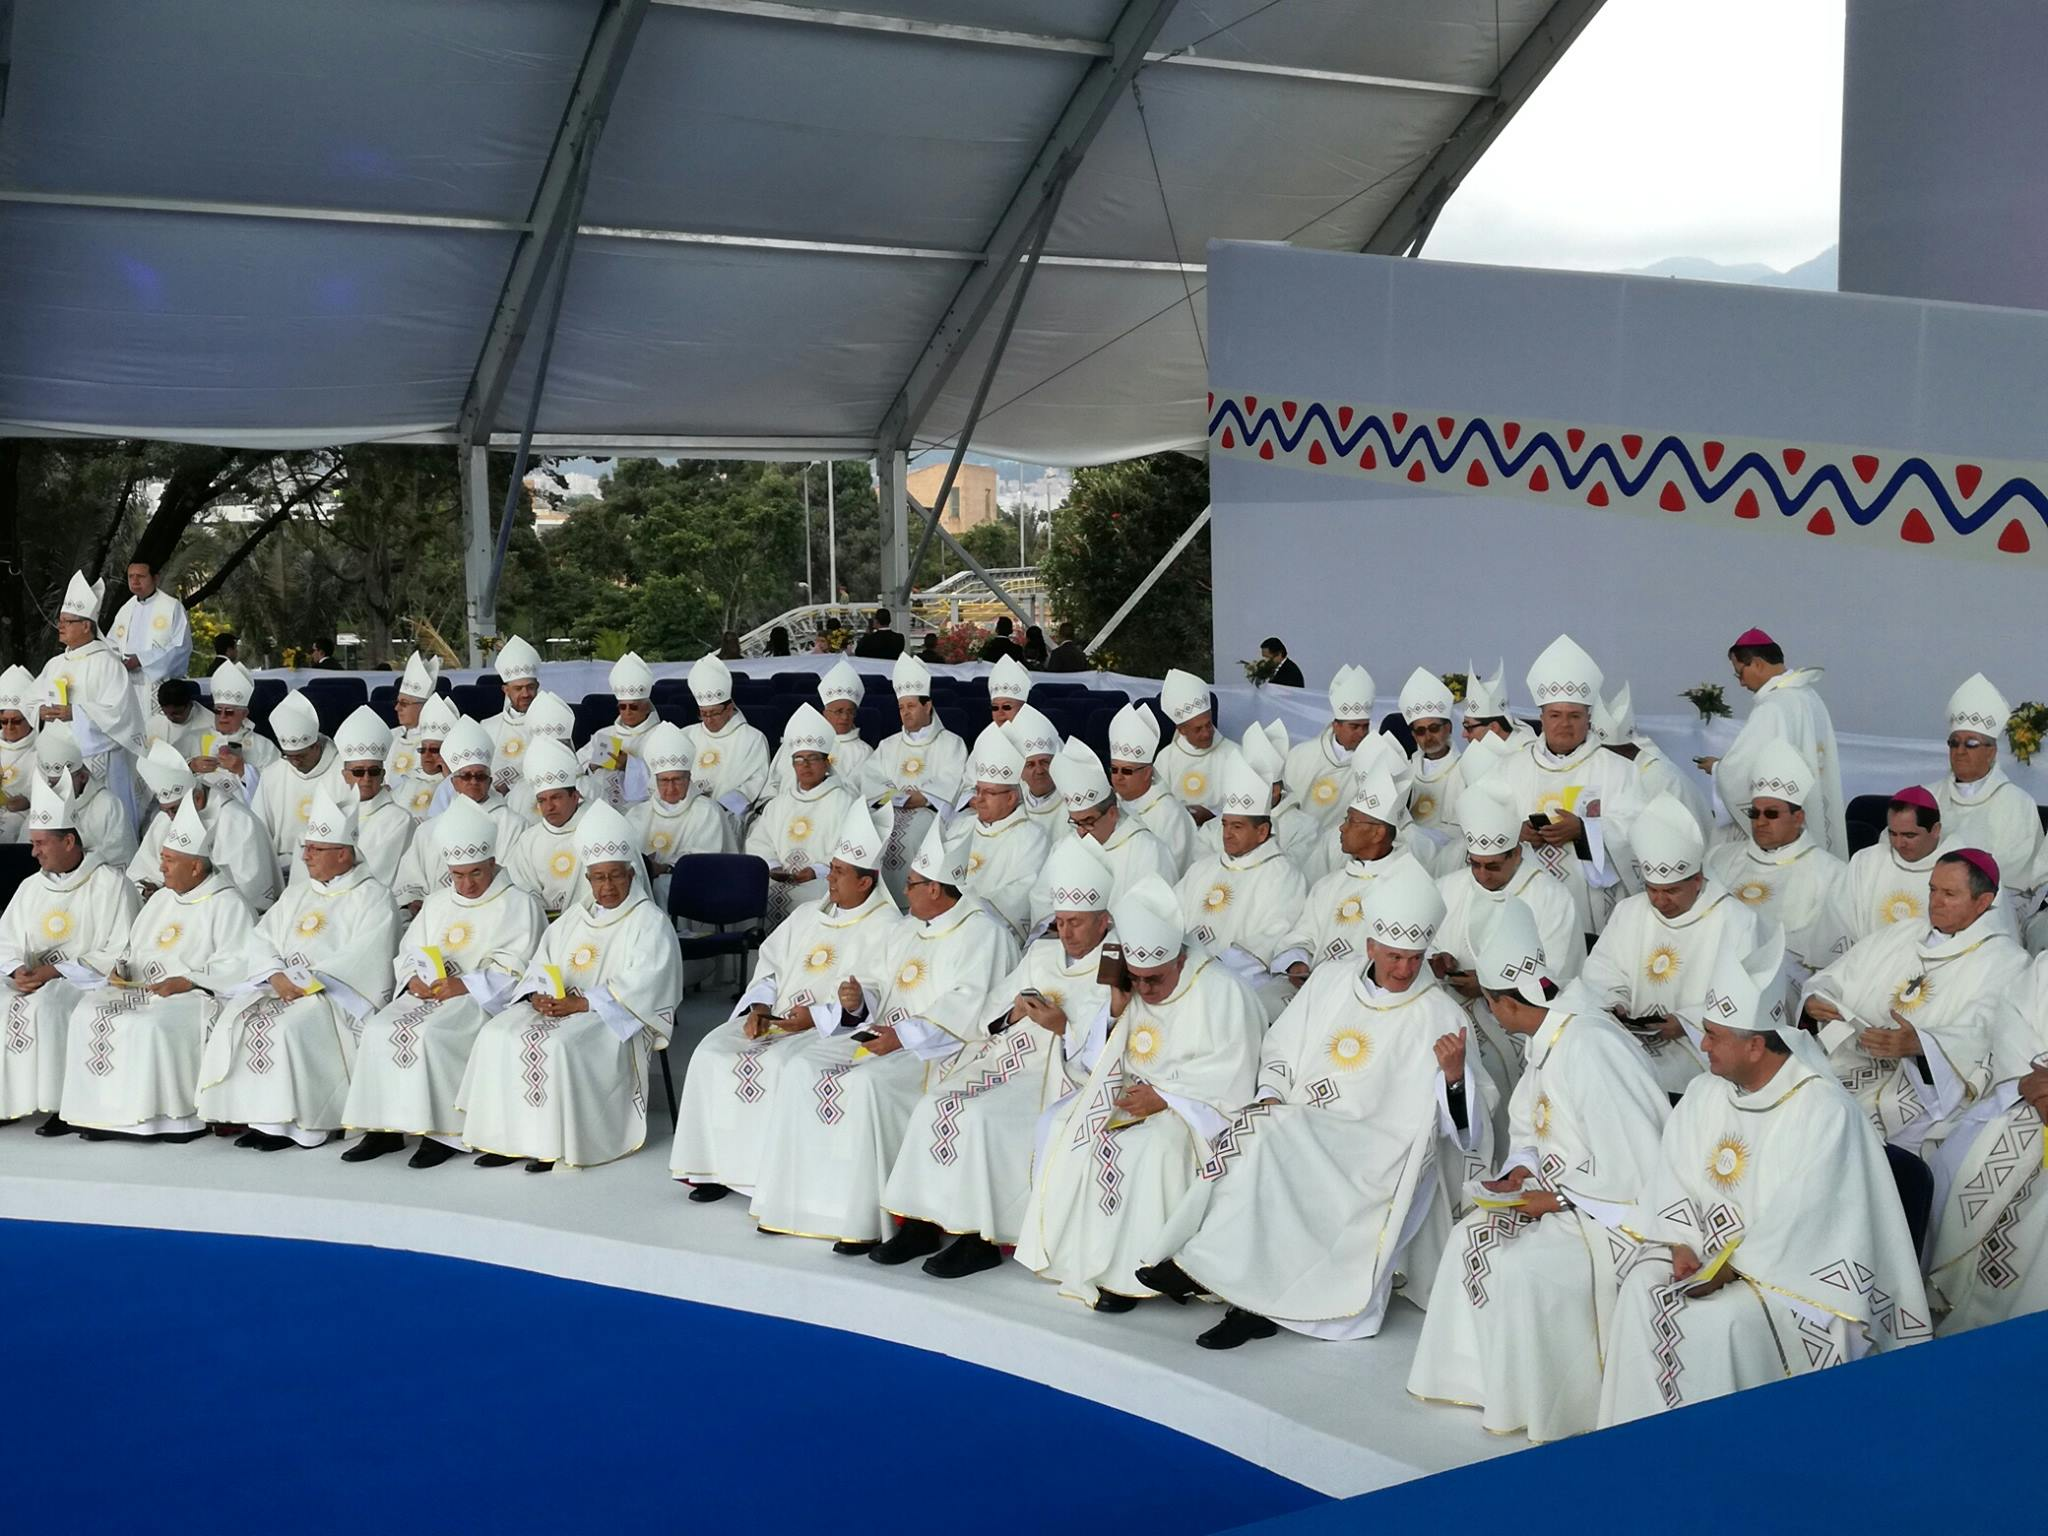 PopeFrancis-Colombia-45.jpg